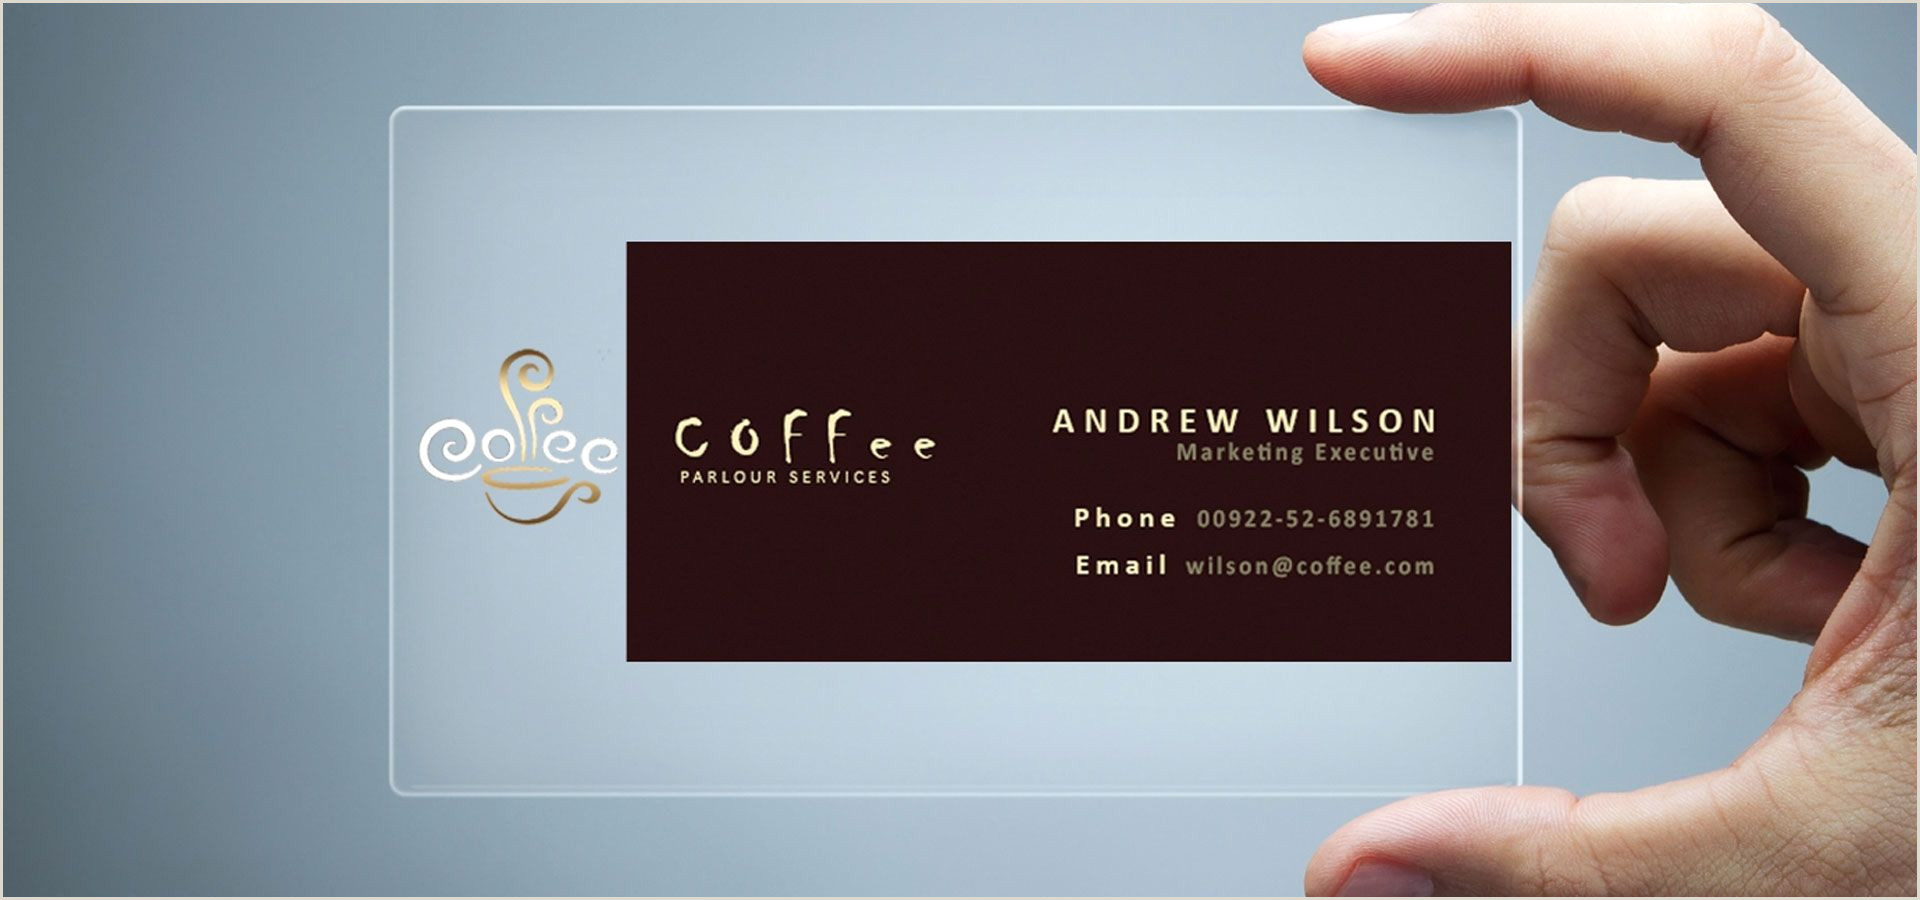 Innovative Business Card The Breathtaking 023 Template Ideas Business Card